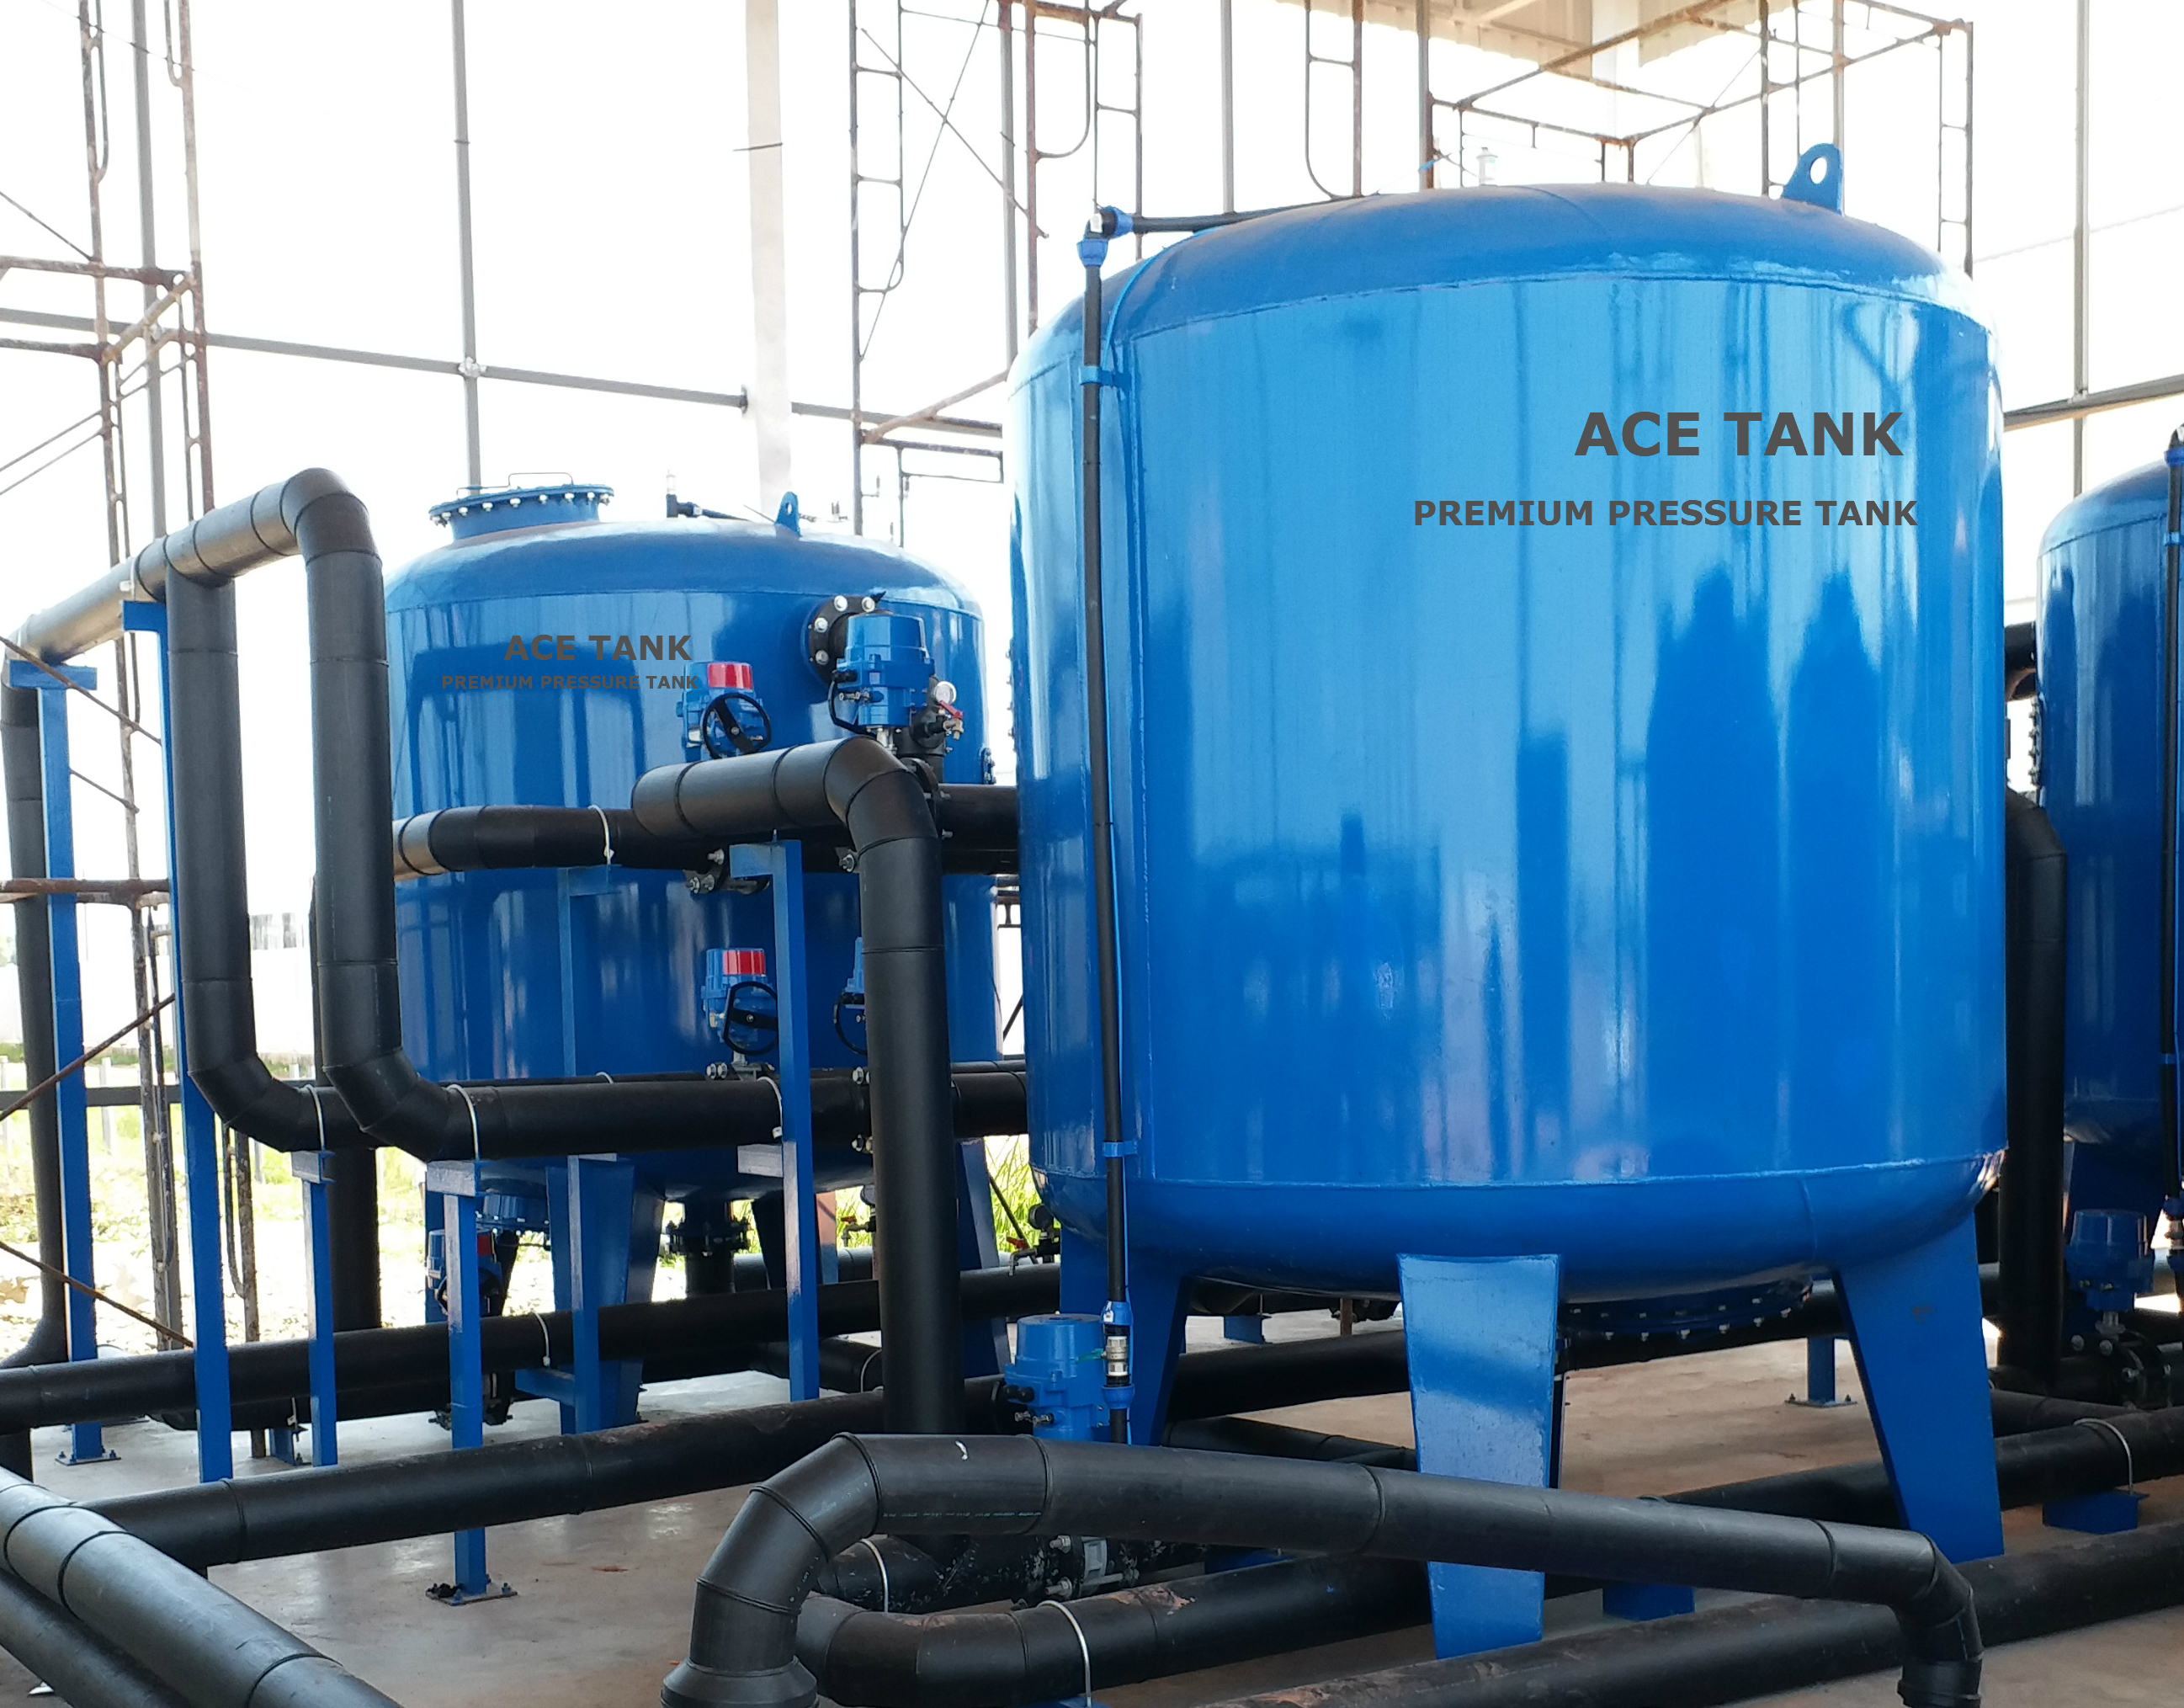 water_wastewater_treatment_recycle020